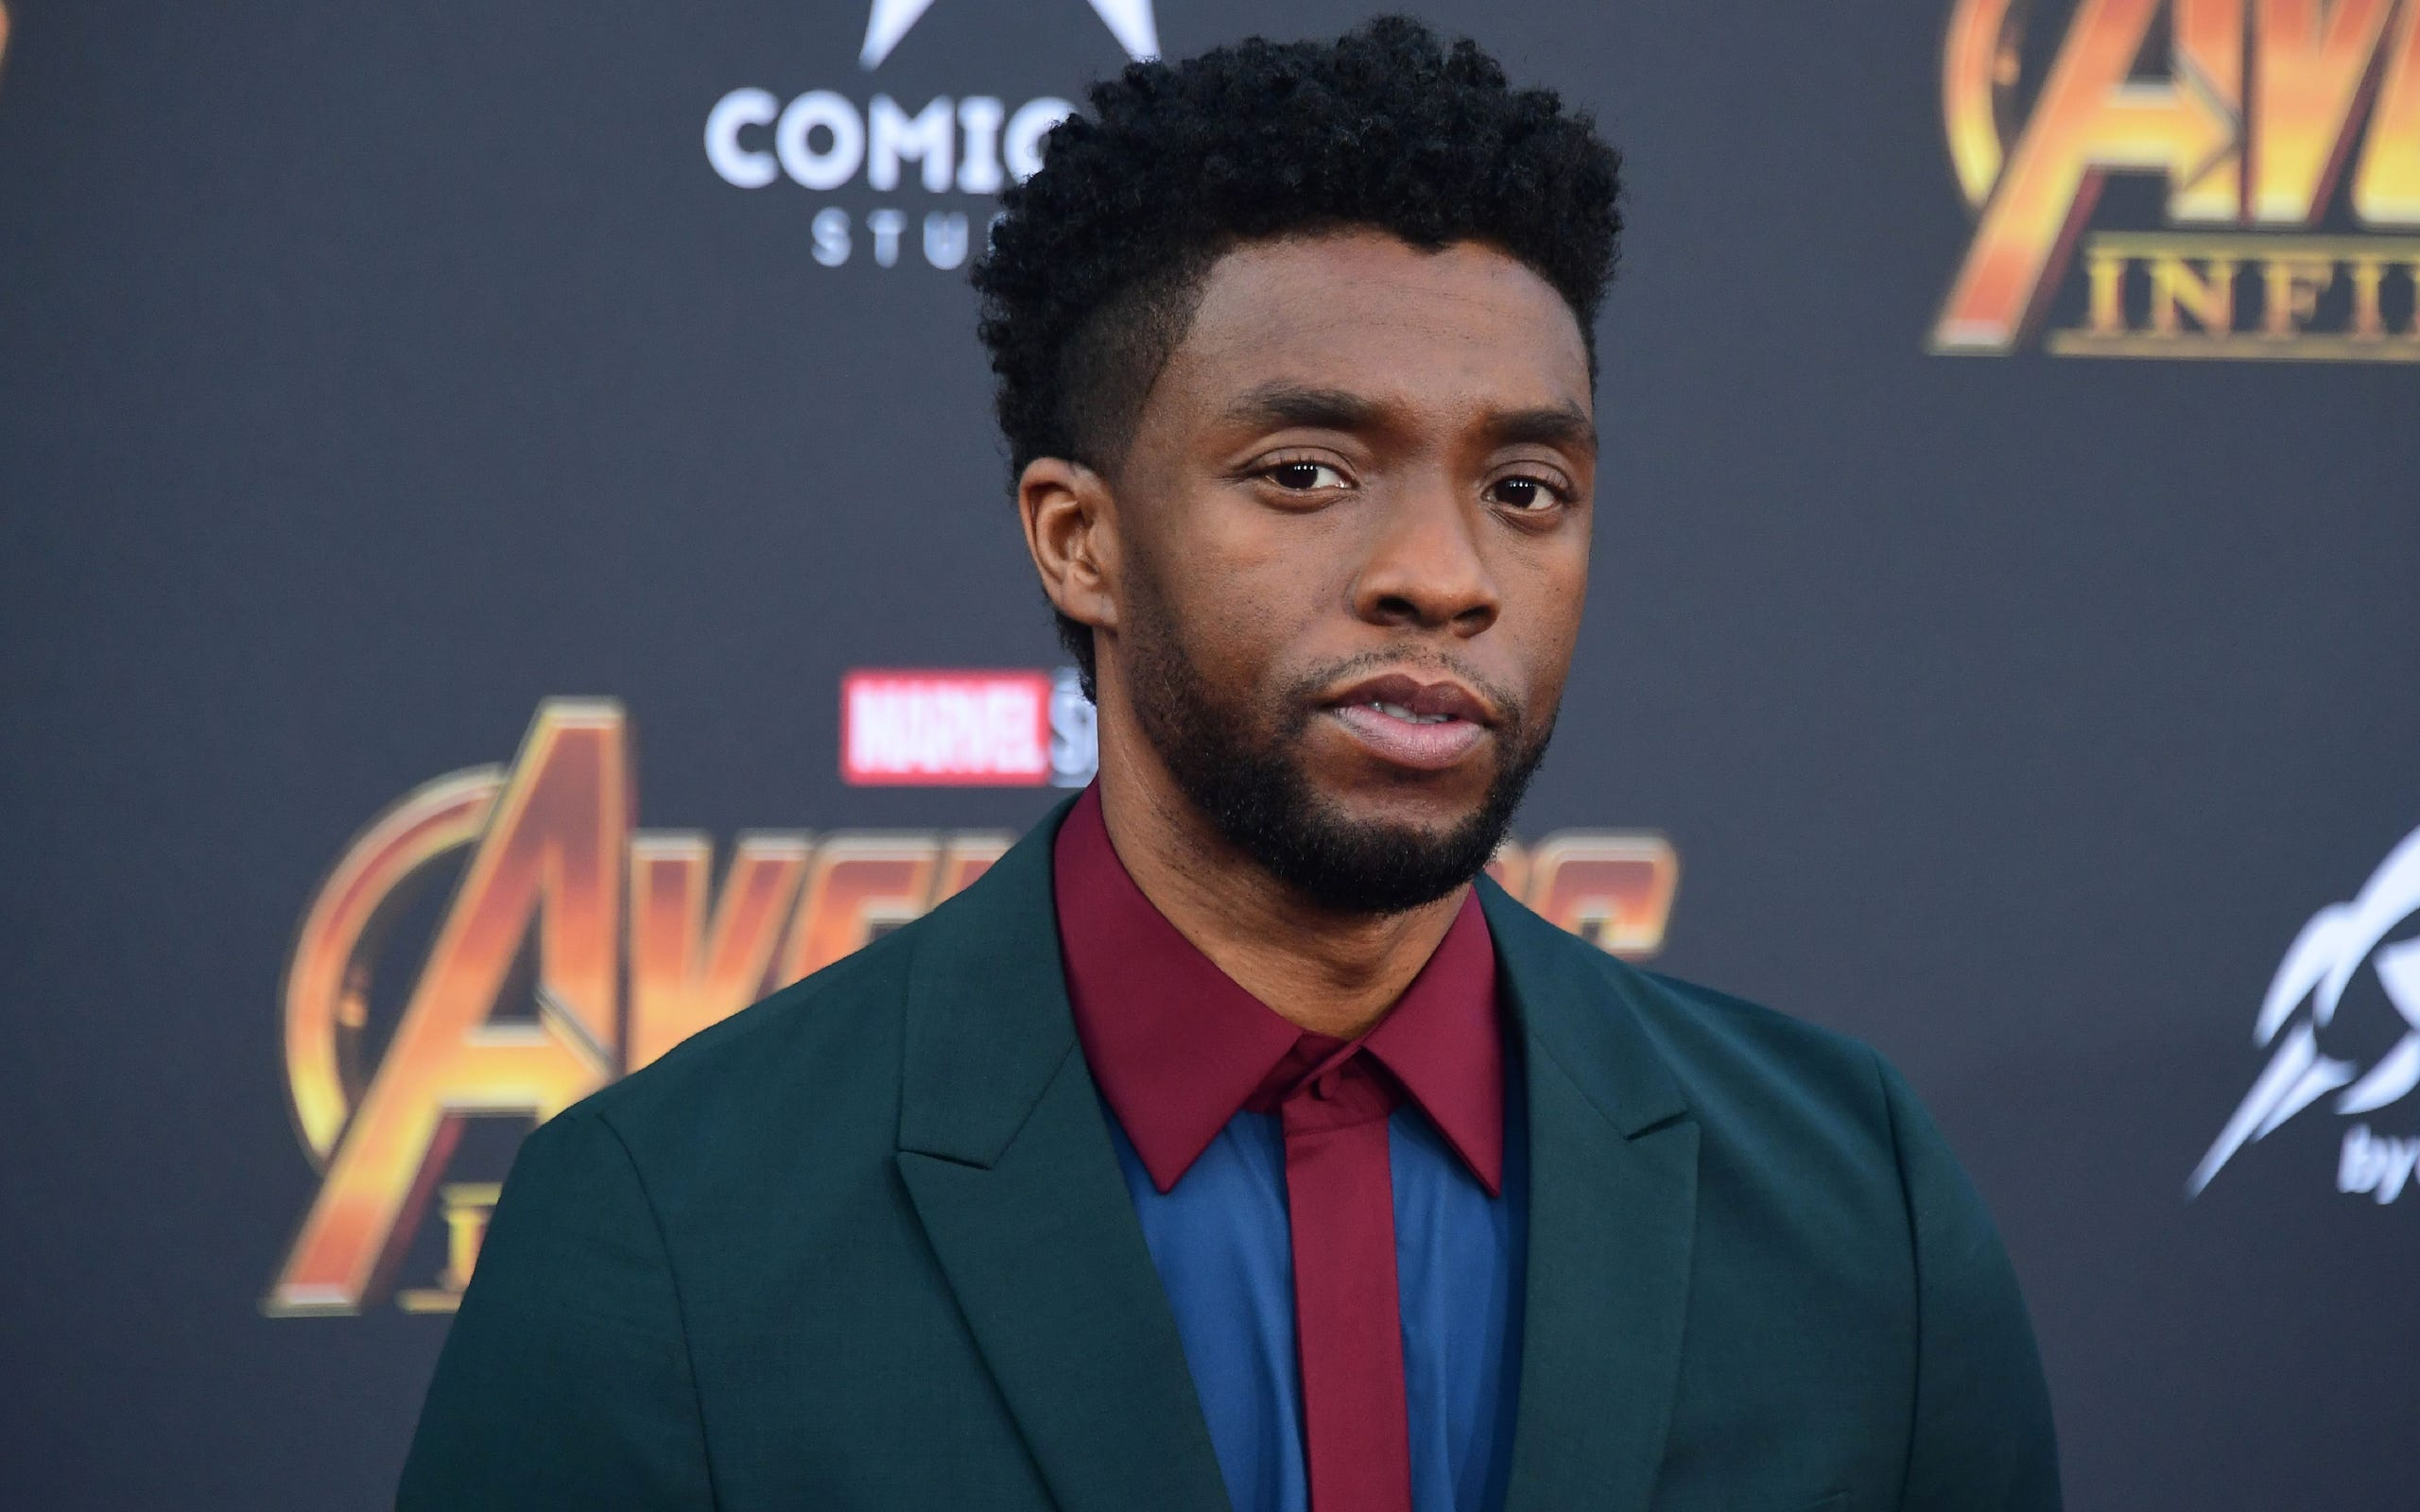 Black Panther Star Chadwick Boseman Dies At 43 His Life In Photos